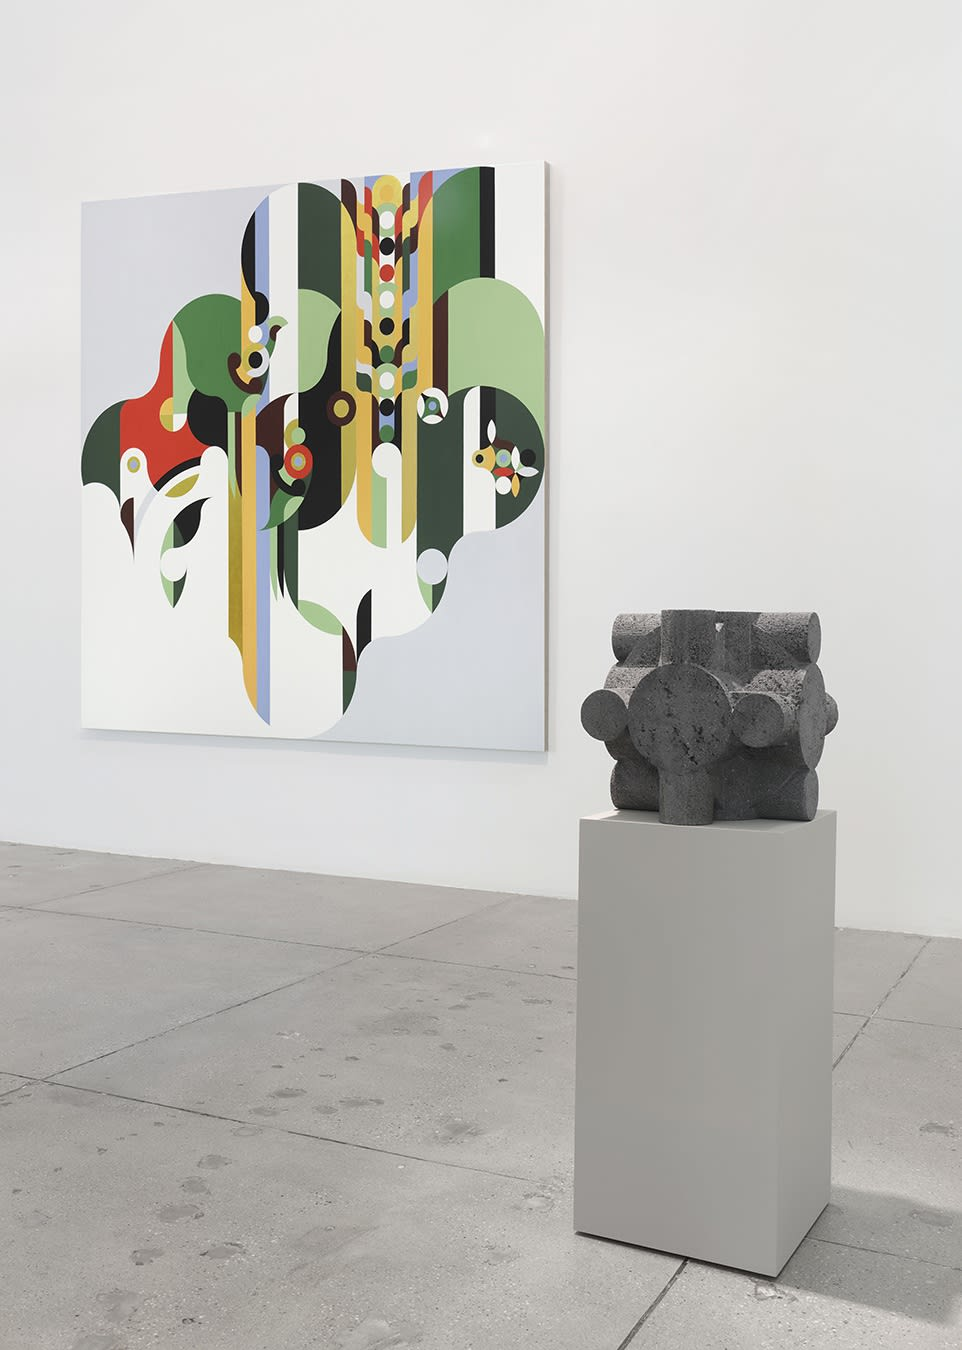 A small stone sculpture in front of an abstract, geometric painting.